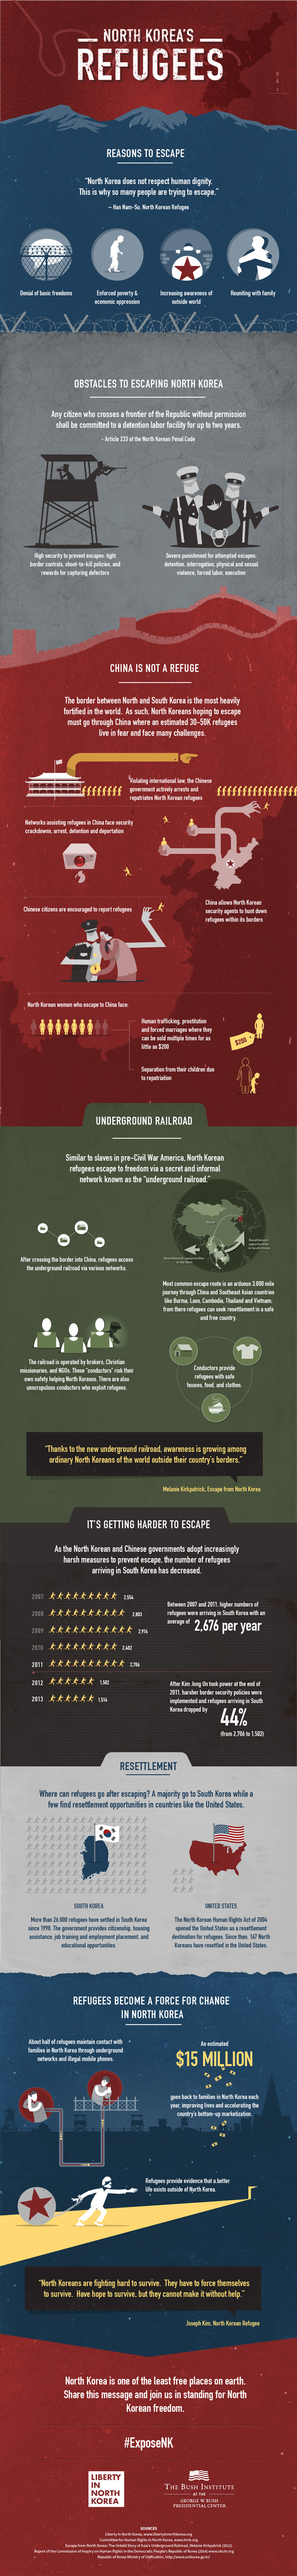 North Korea's Refugees Infographic